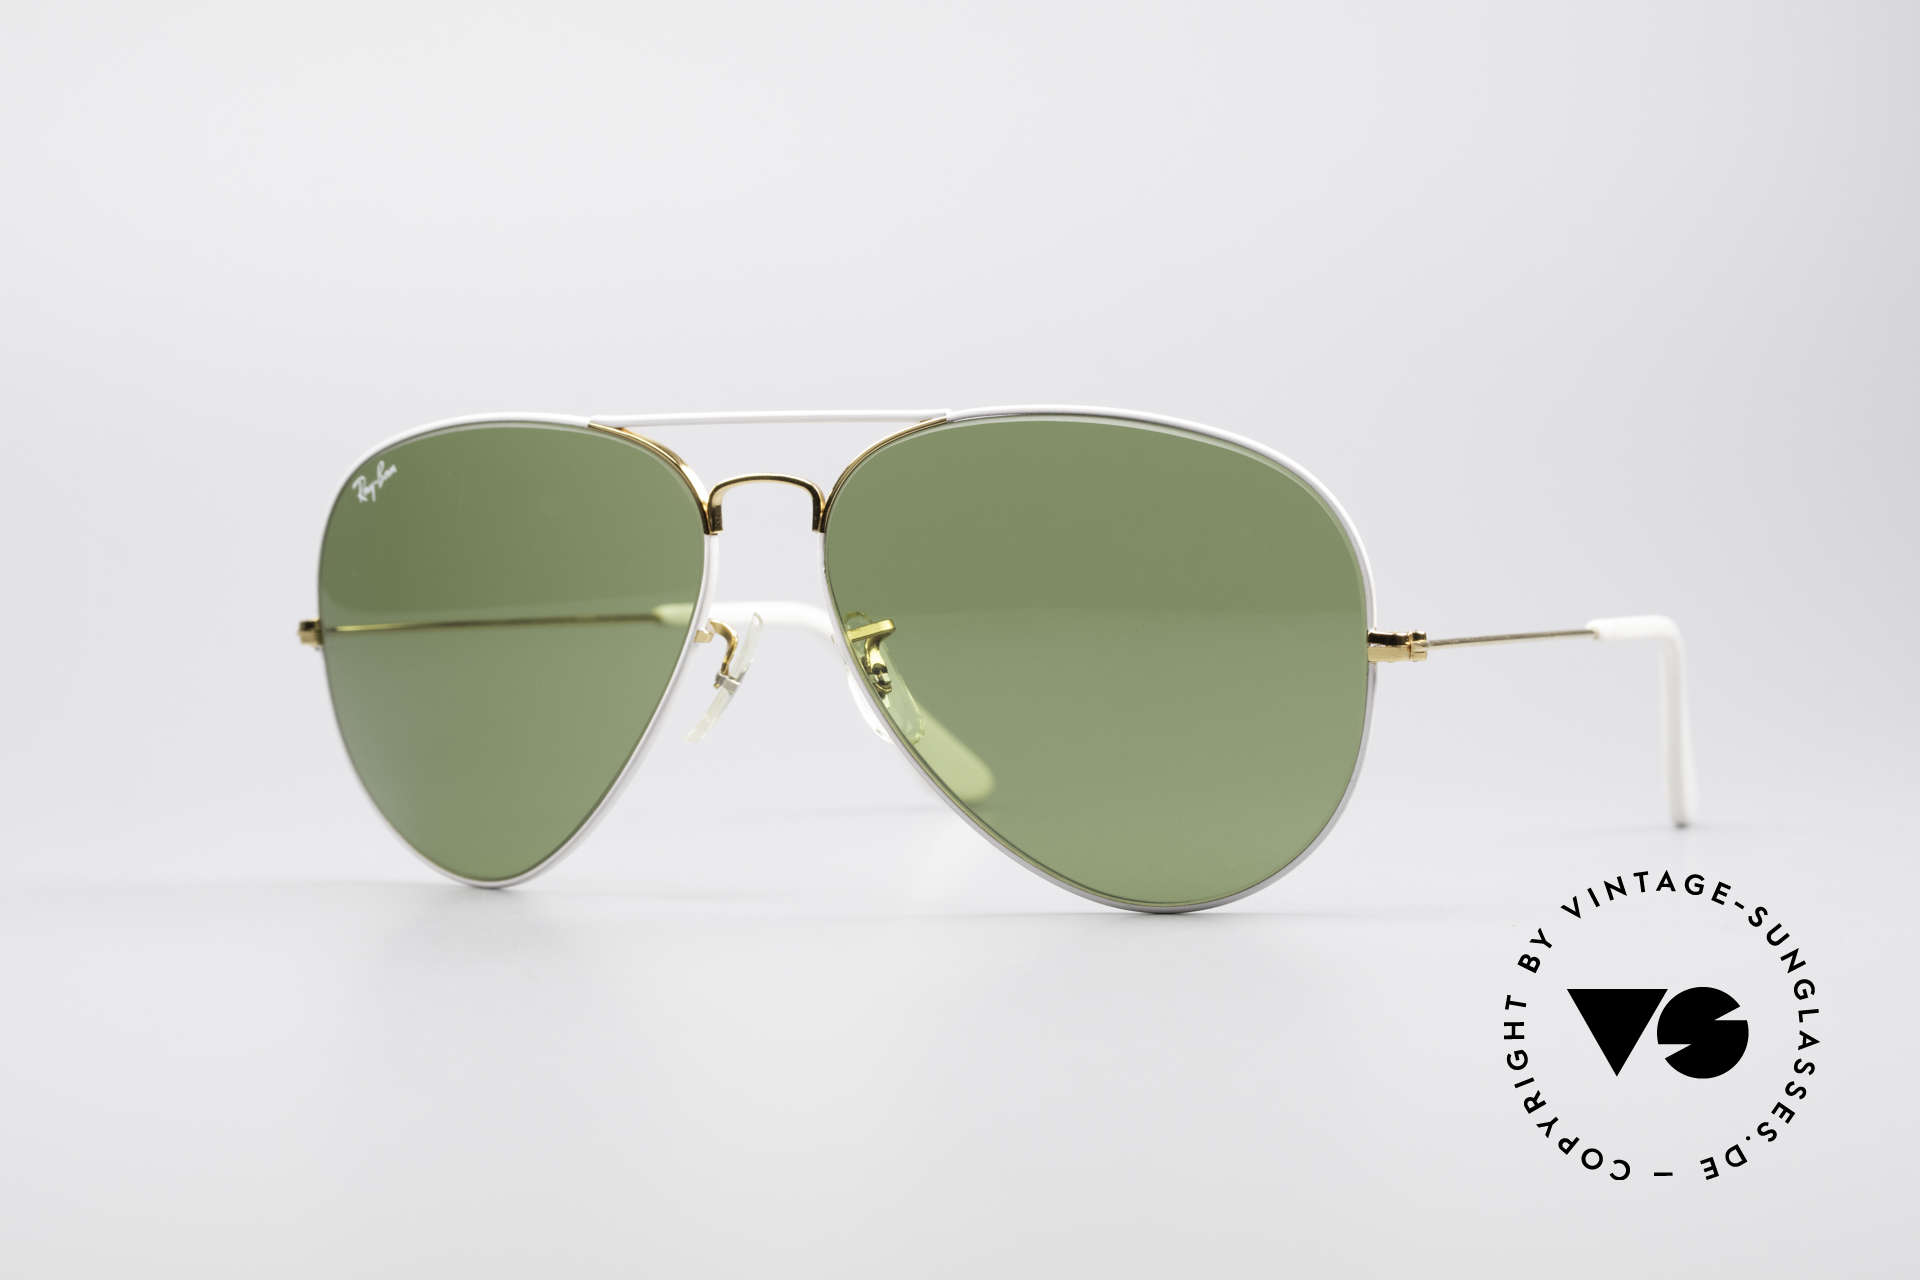 Ray Ban Large Metal II Flying Colors Limited Edition, vintage RAY-BAN designer sunglasses in L size 62/14, Made for Men